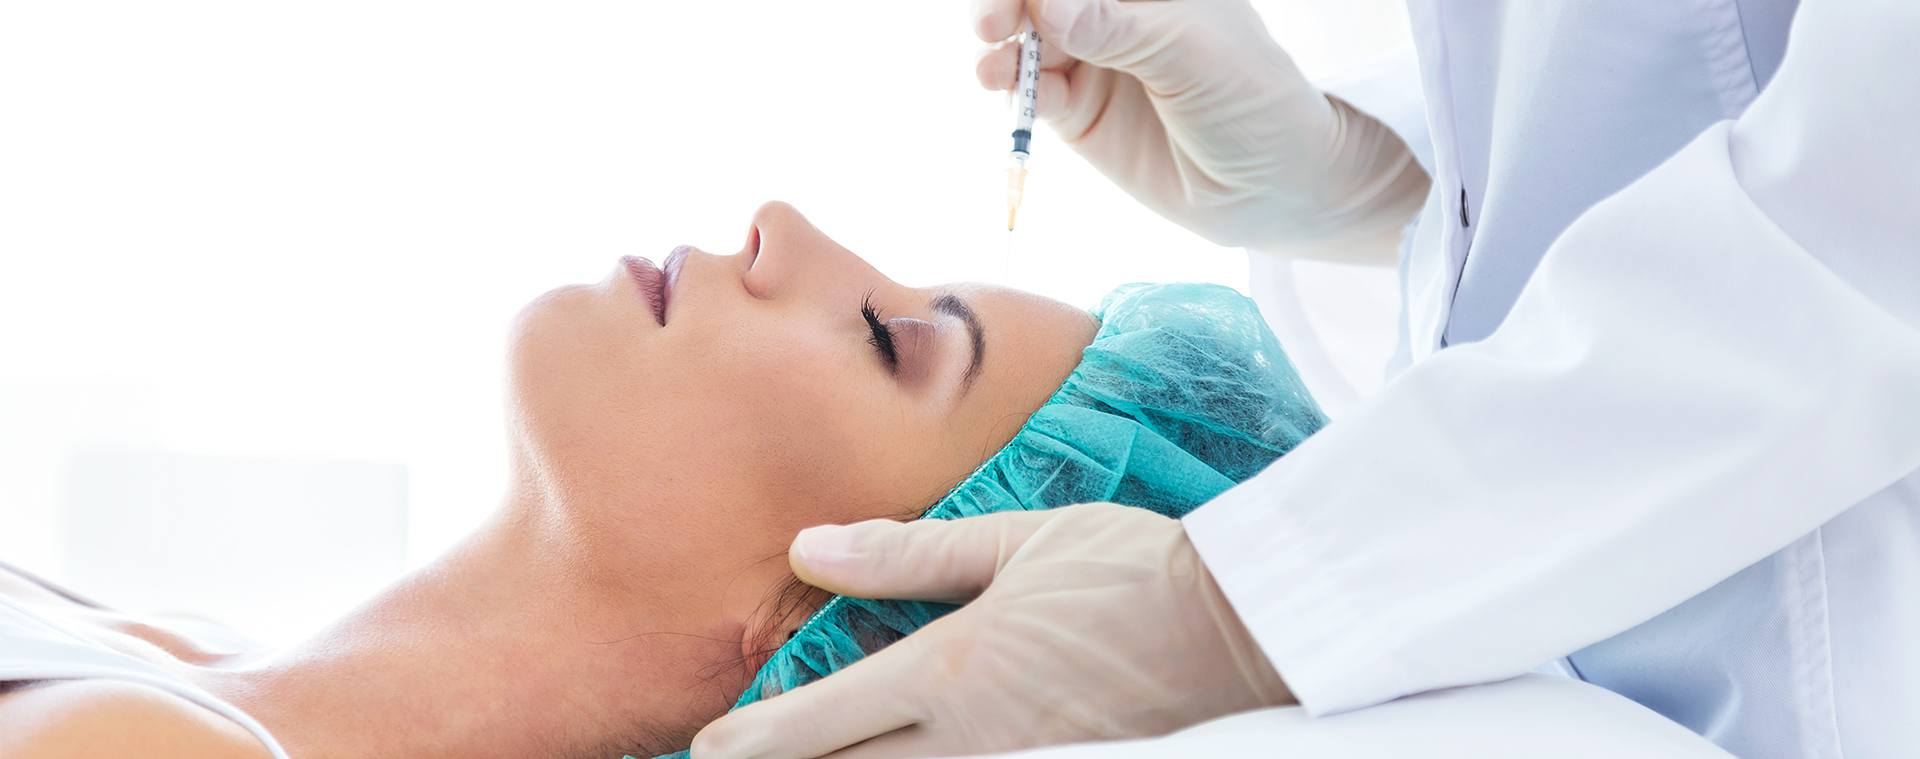 botox antiaging